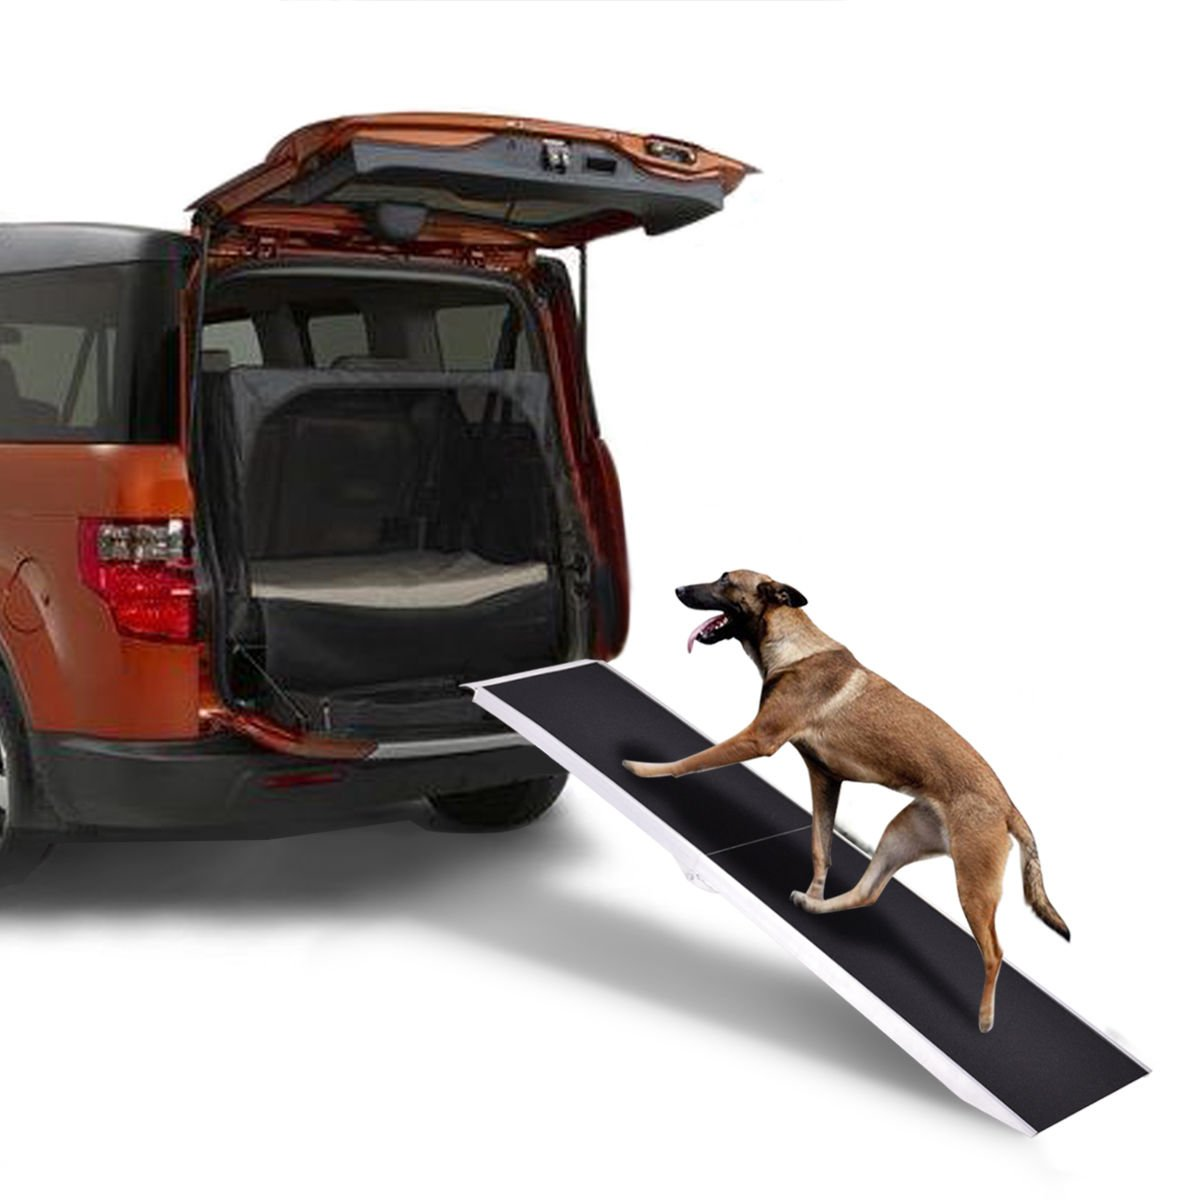 Goplus 8FT Pet Ramp Portable Aluminum Folding Lightweight Dog Ramp for Car Truck SUV, 15'' Wide 250lbs Capacity by Goplus